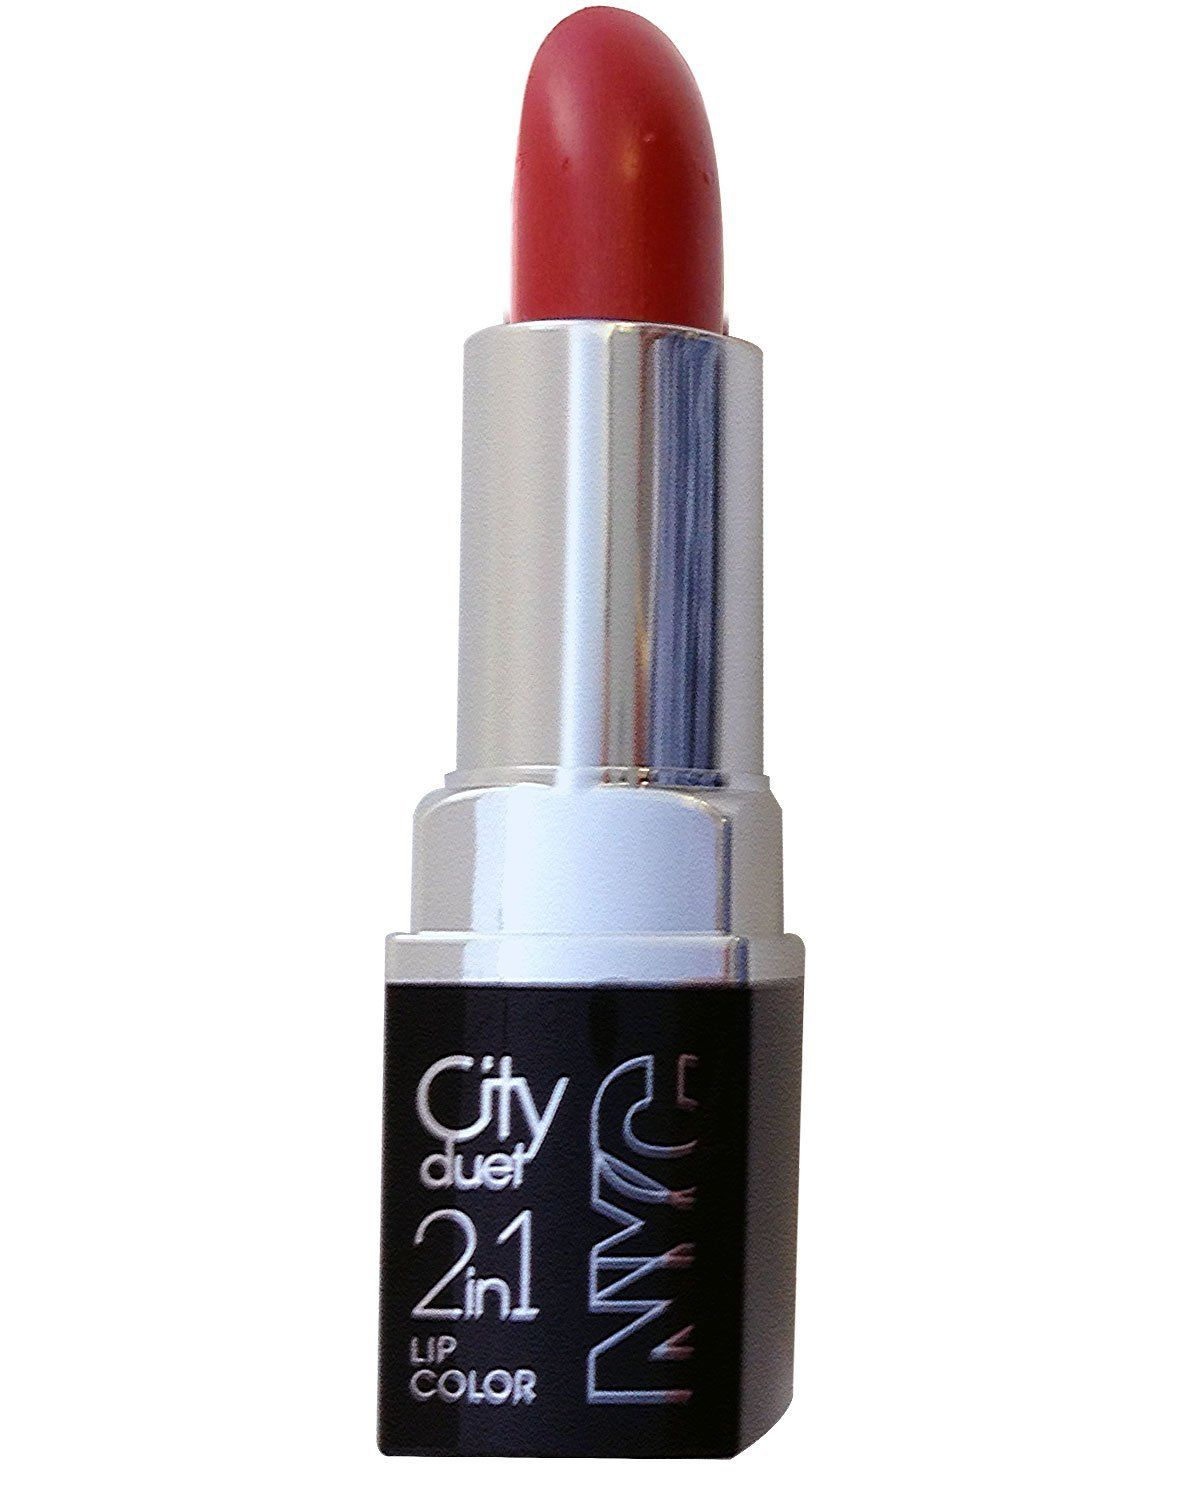 13 Sensational Schemes That Are: NYC City Duet Lip Color, 2-in-1, The Red Hots 425, 0.13 Oz